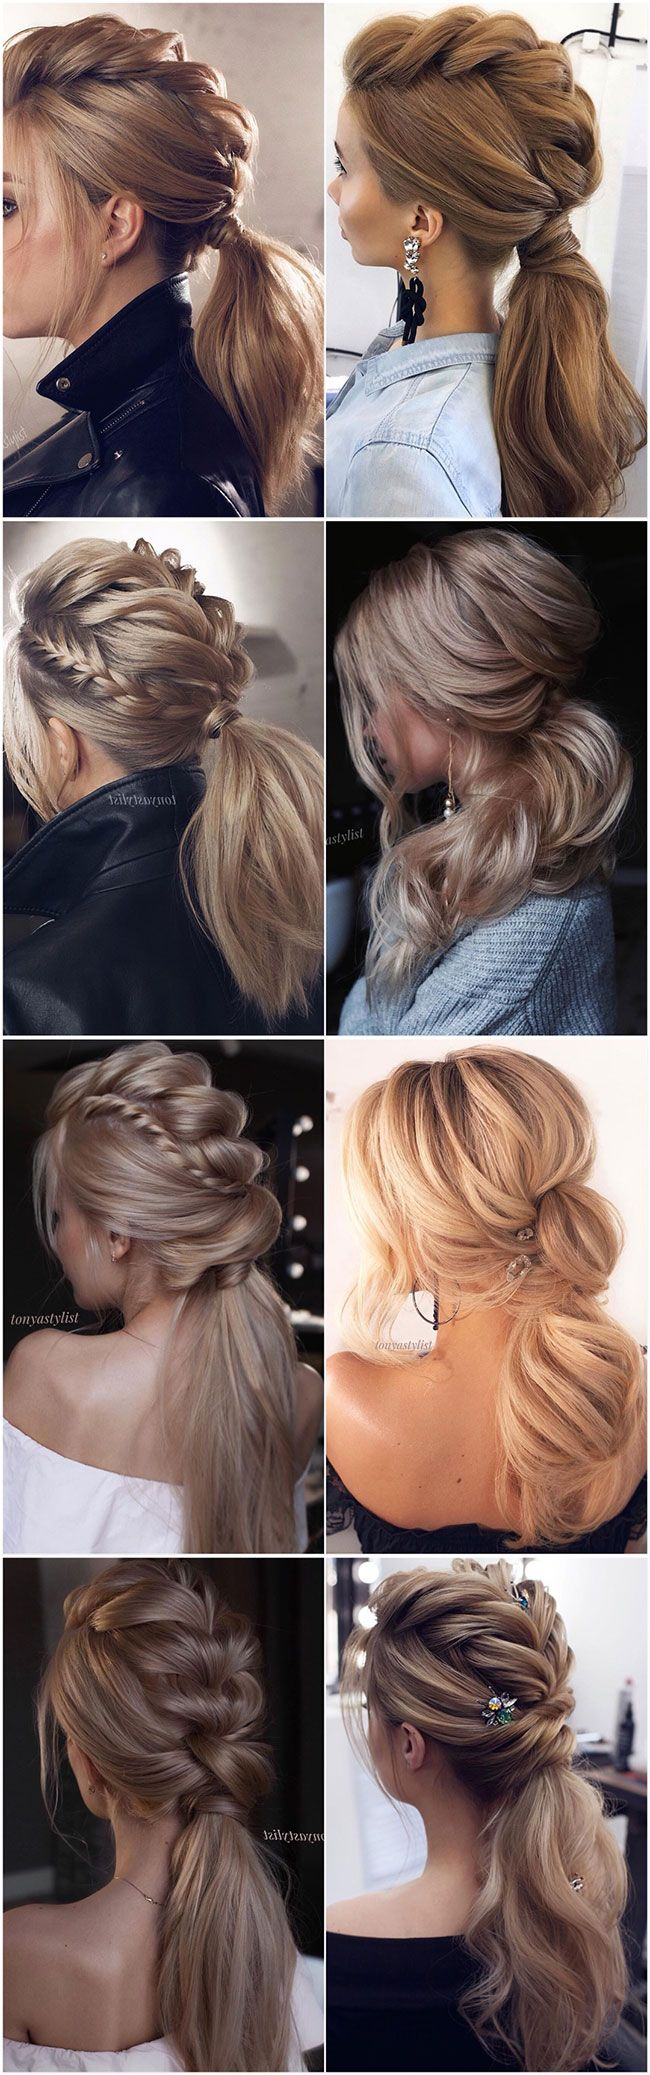 60+ Best Wedding Hairstyles from Tonyastylist for the Modern Bride  - #weddings ...